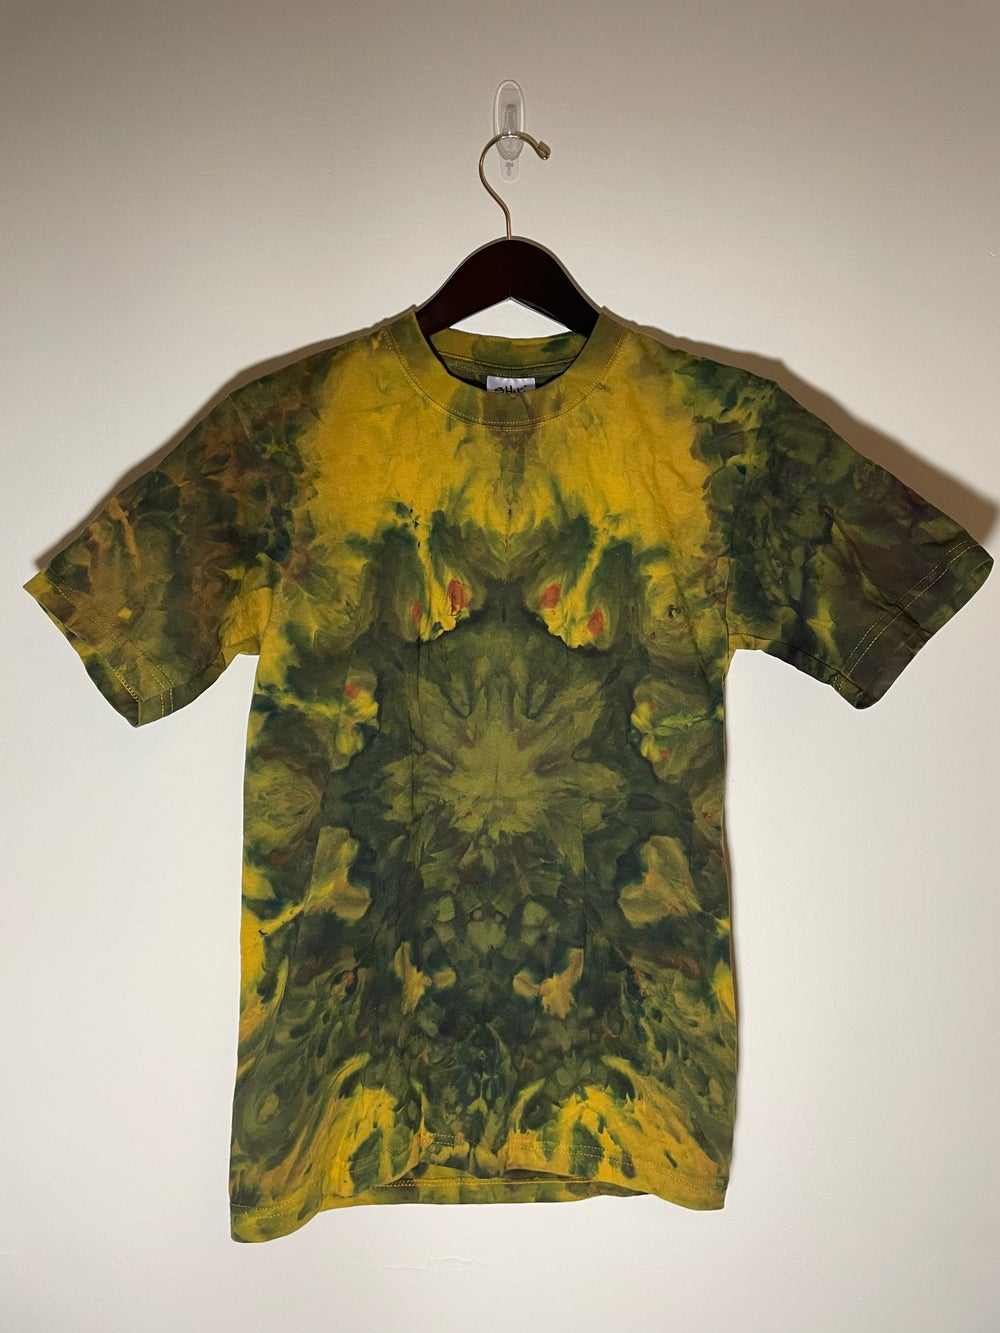 Test Tie Dye #3 - Medium